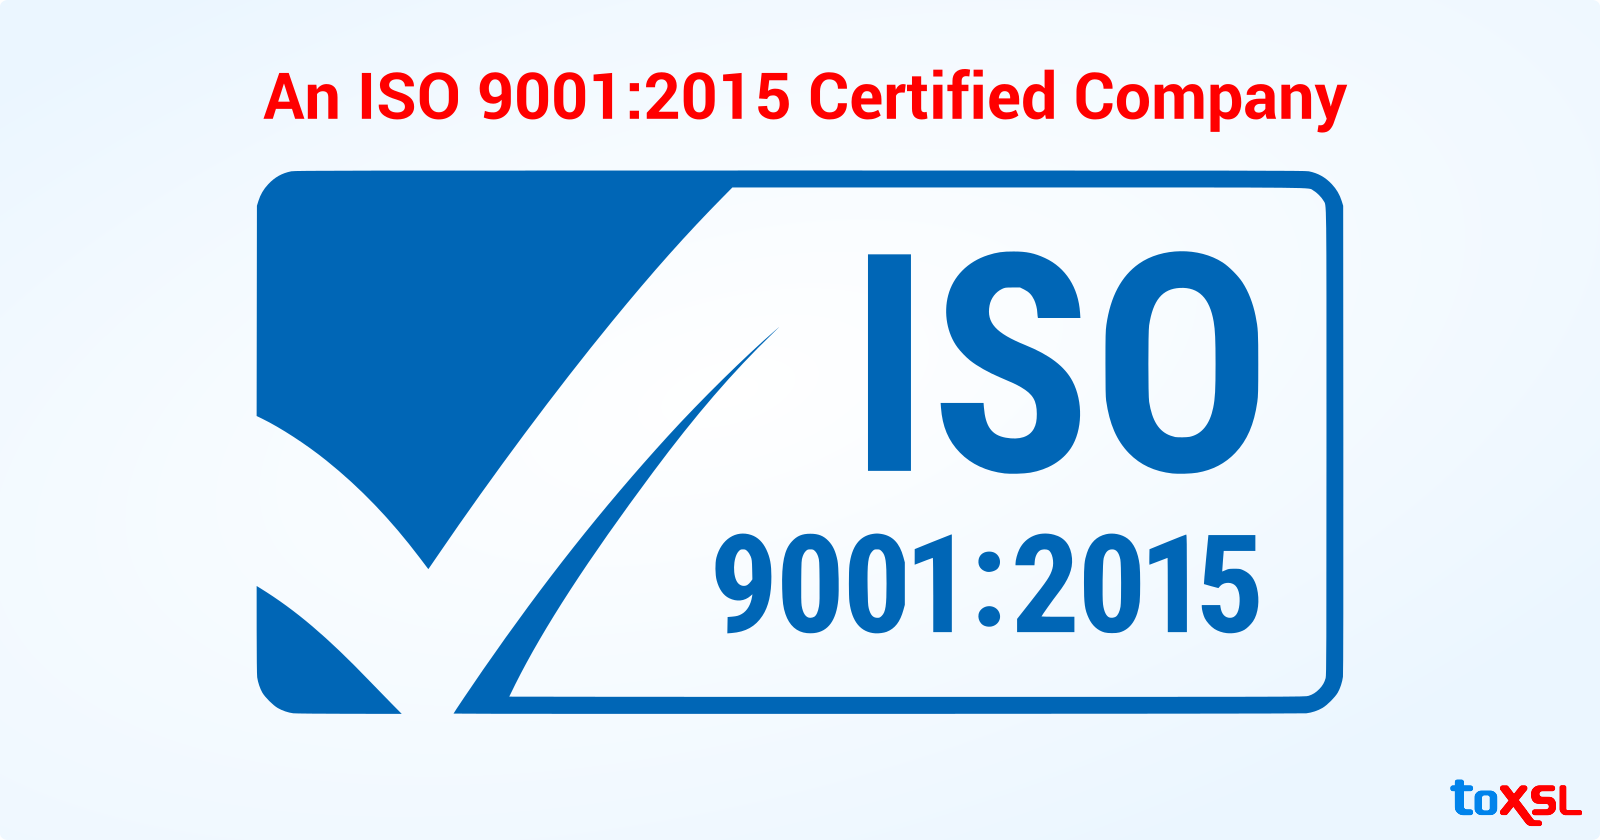 We have been awarded ISO: 9001:2015 certification!